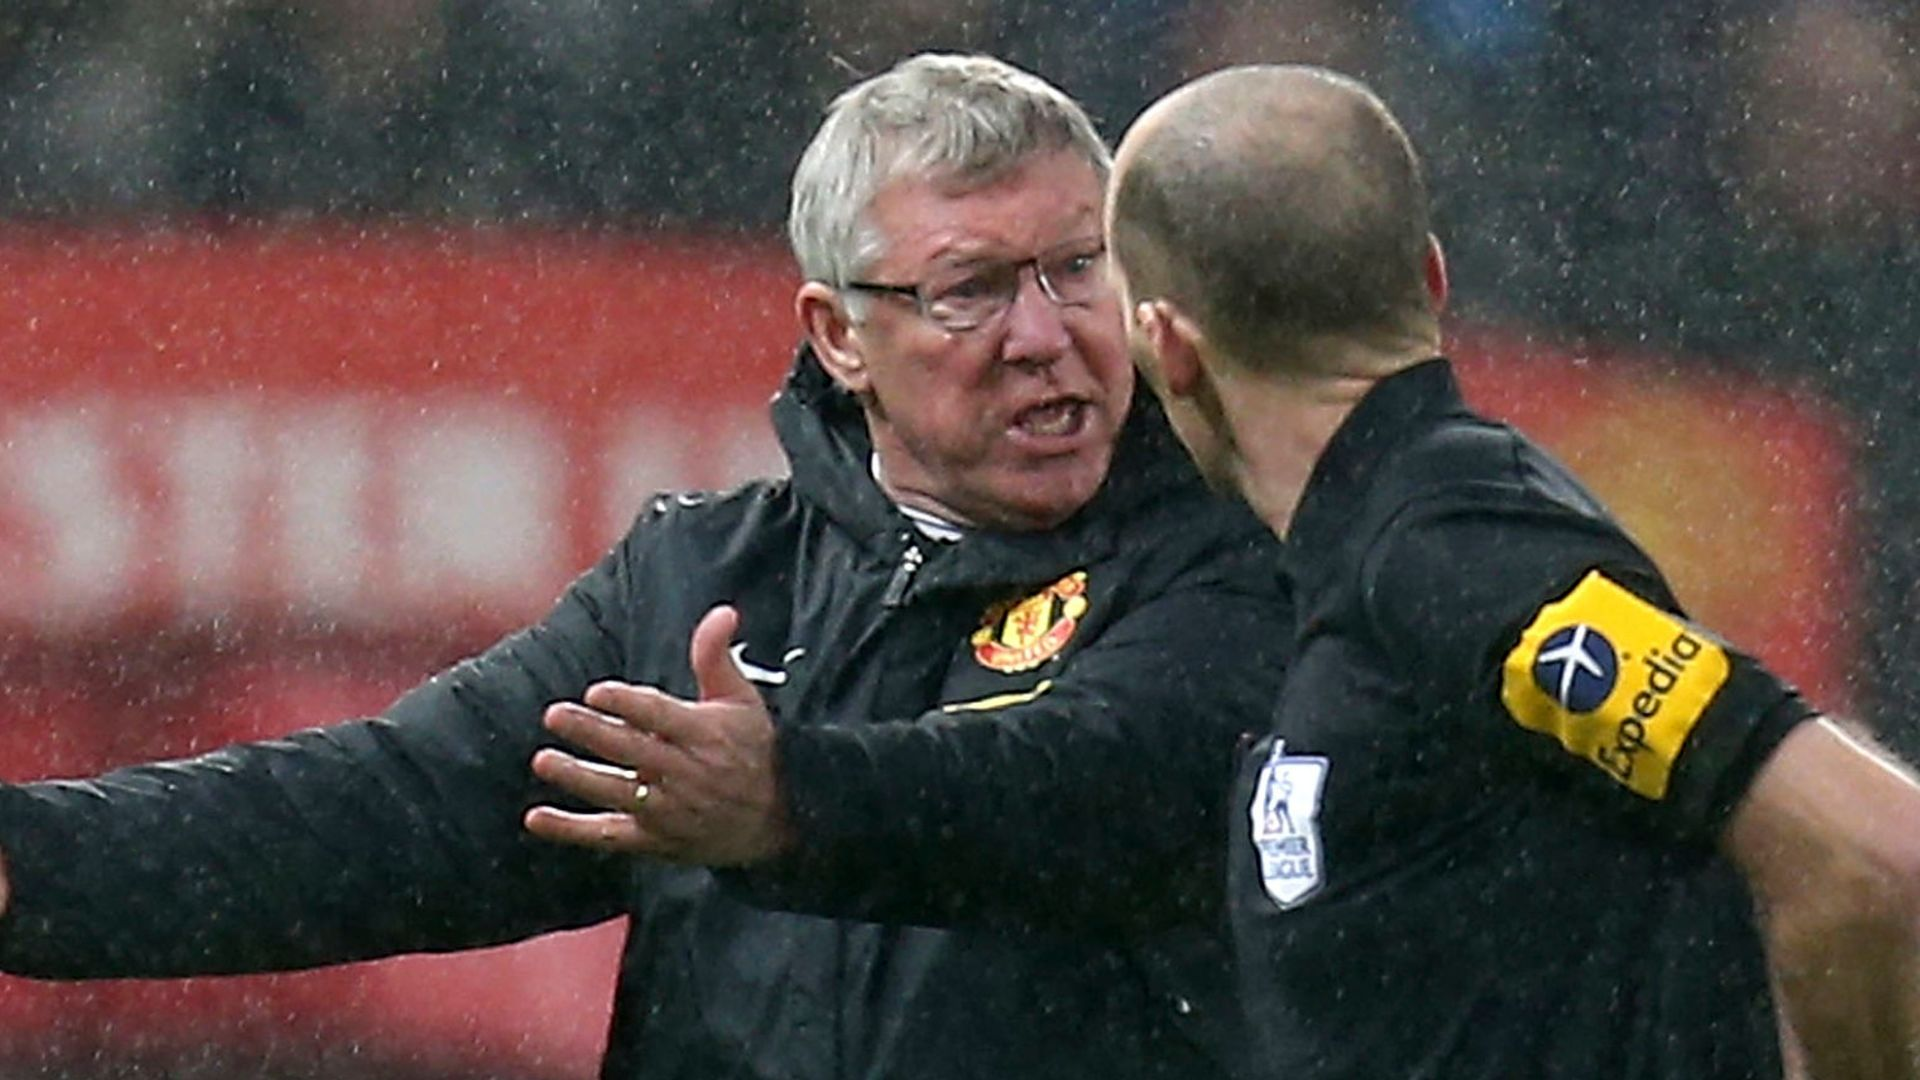 Fergie's mind games: 'Don't let Vieira ref the match'